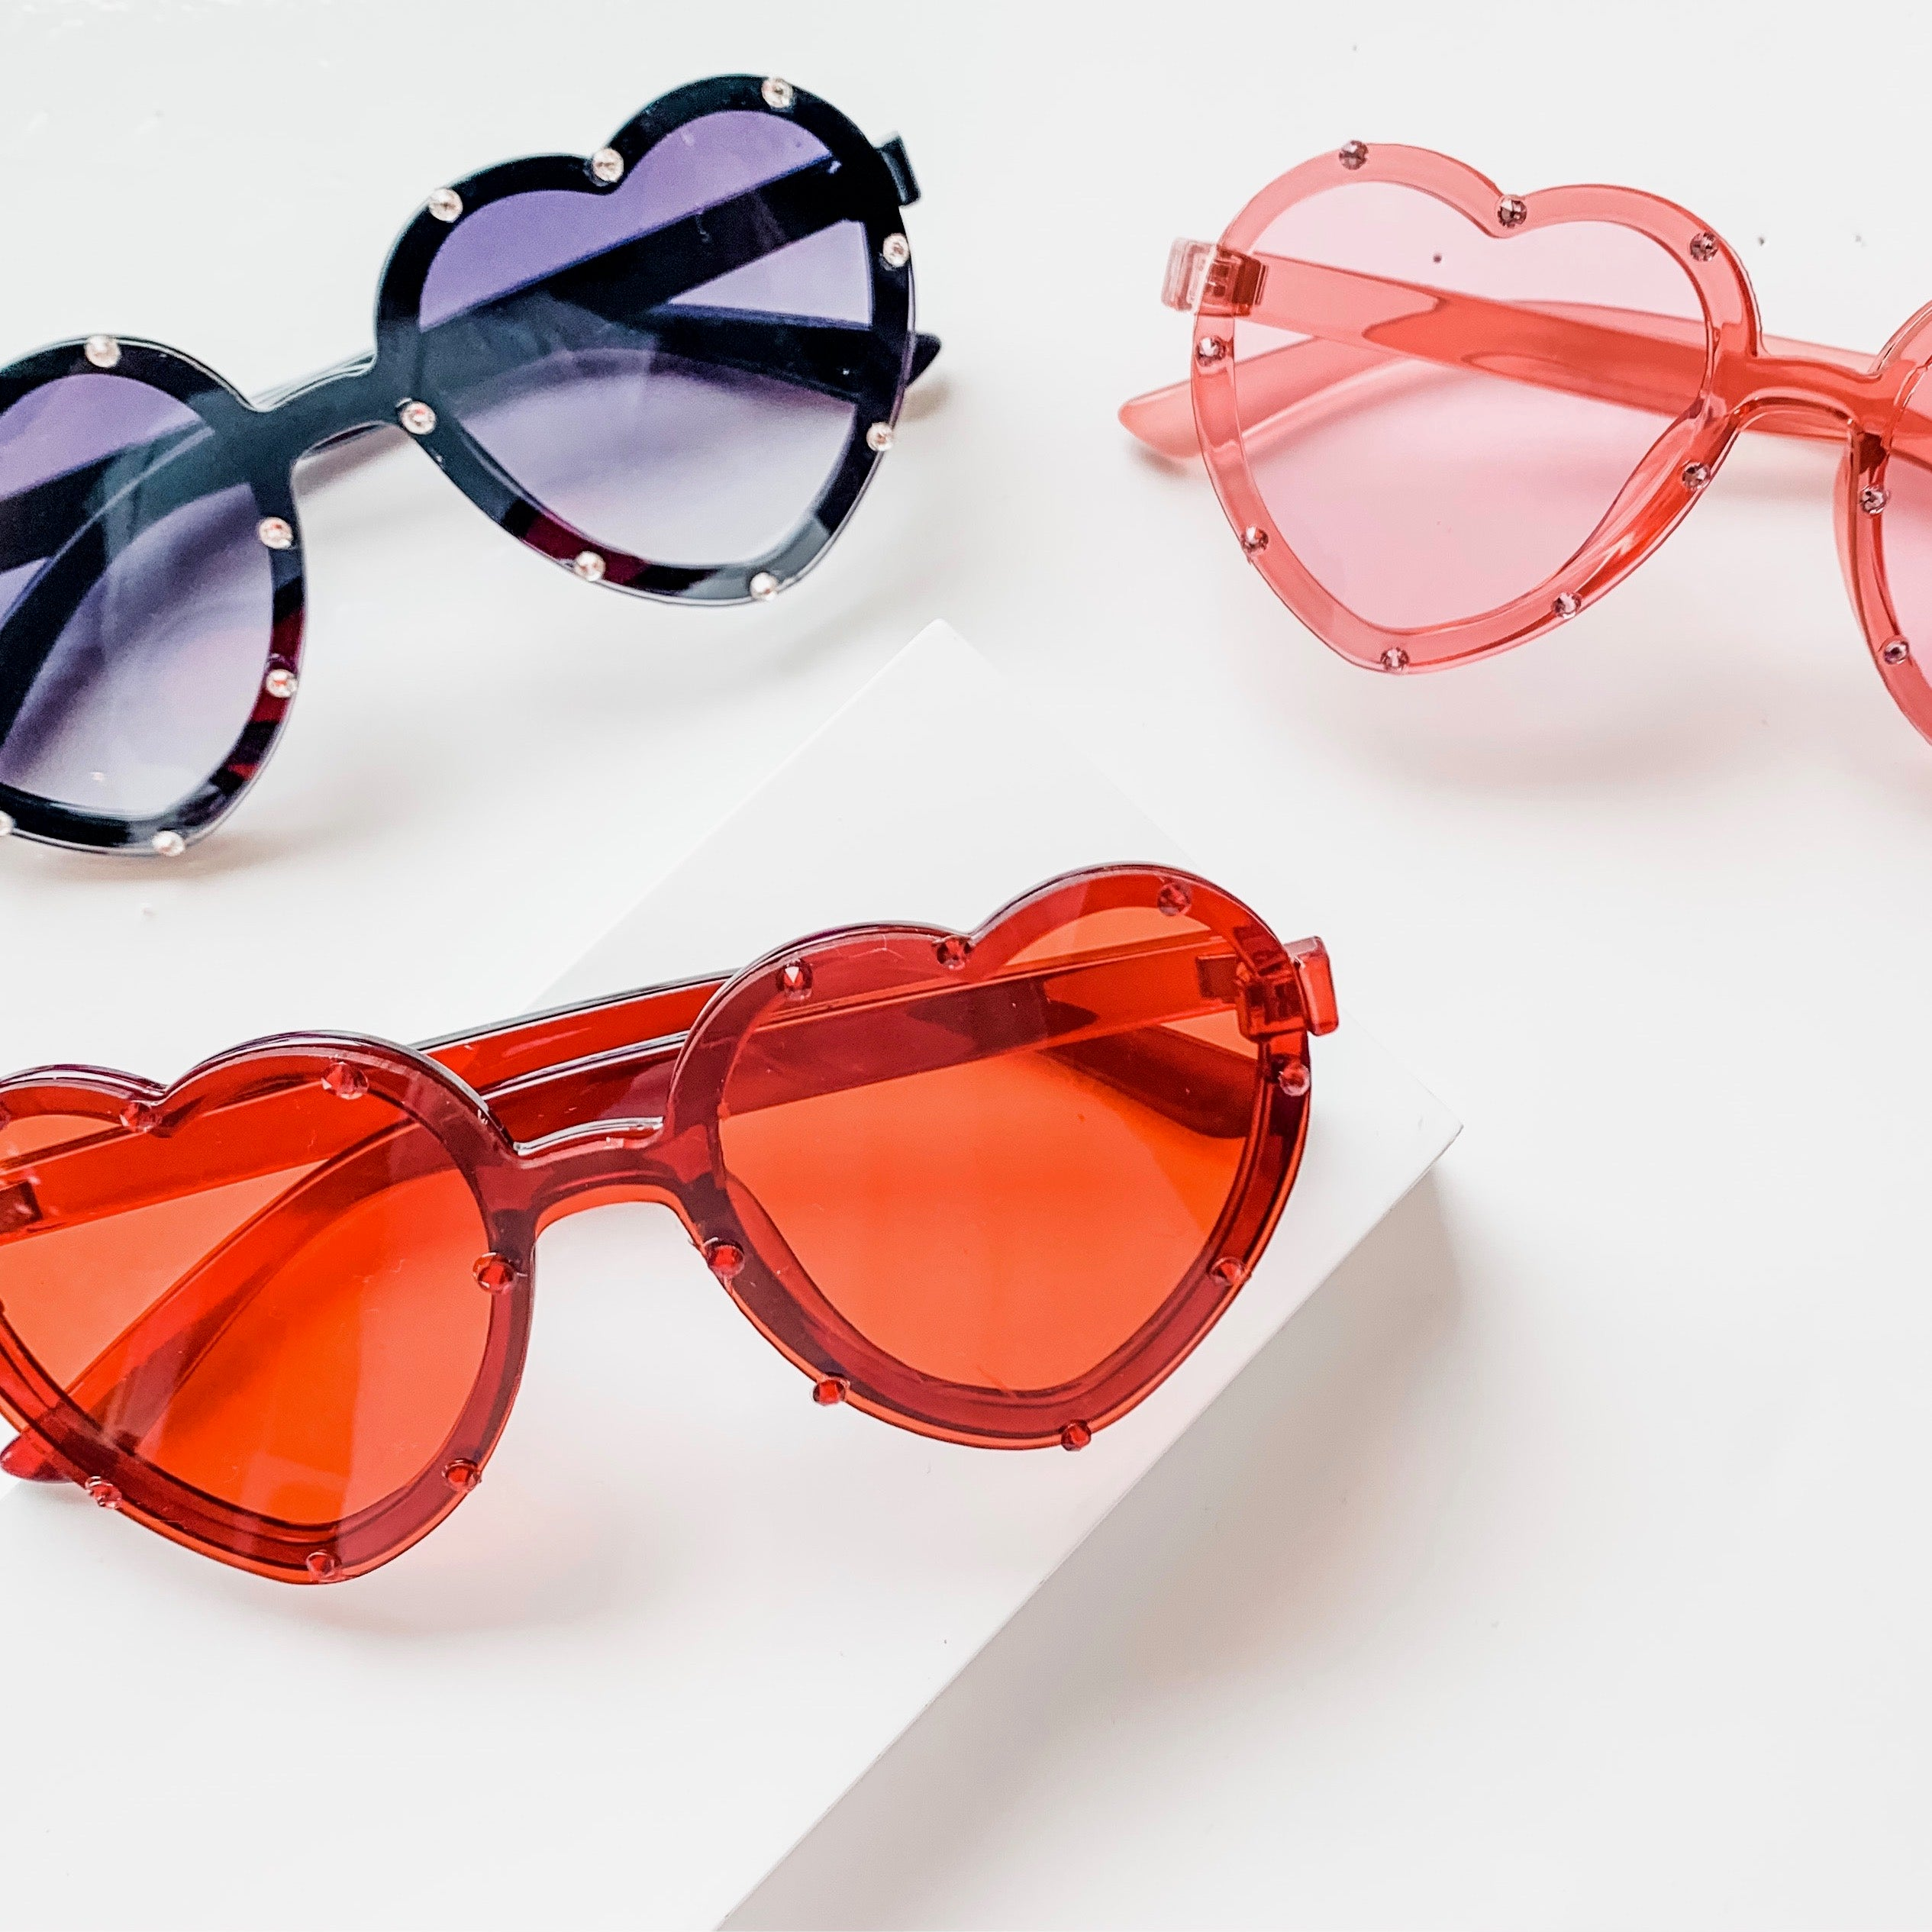 Heart Shaped Sunglasses in Pink